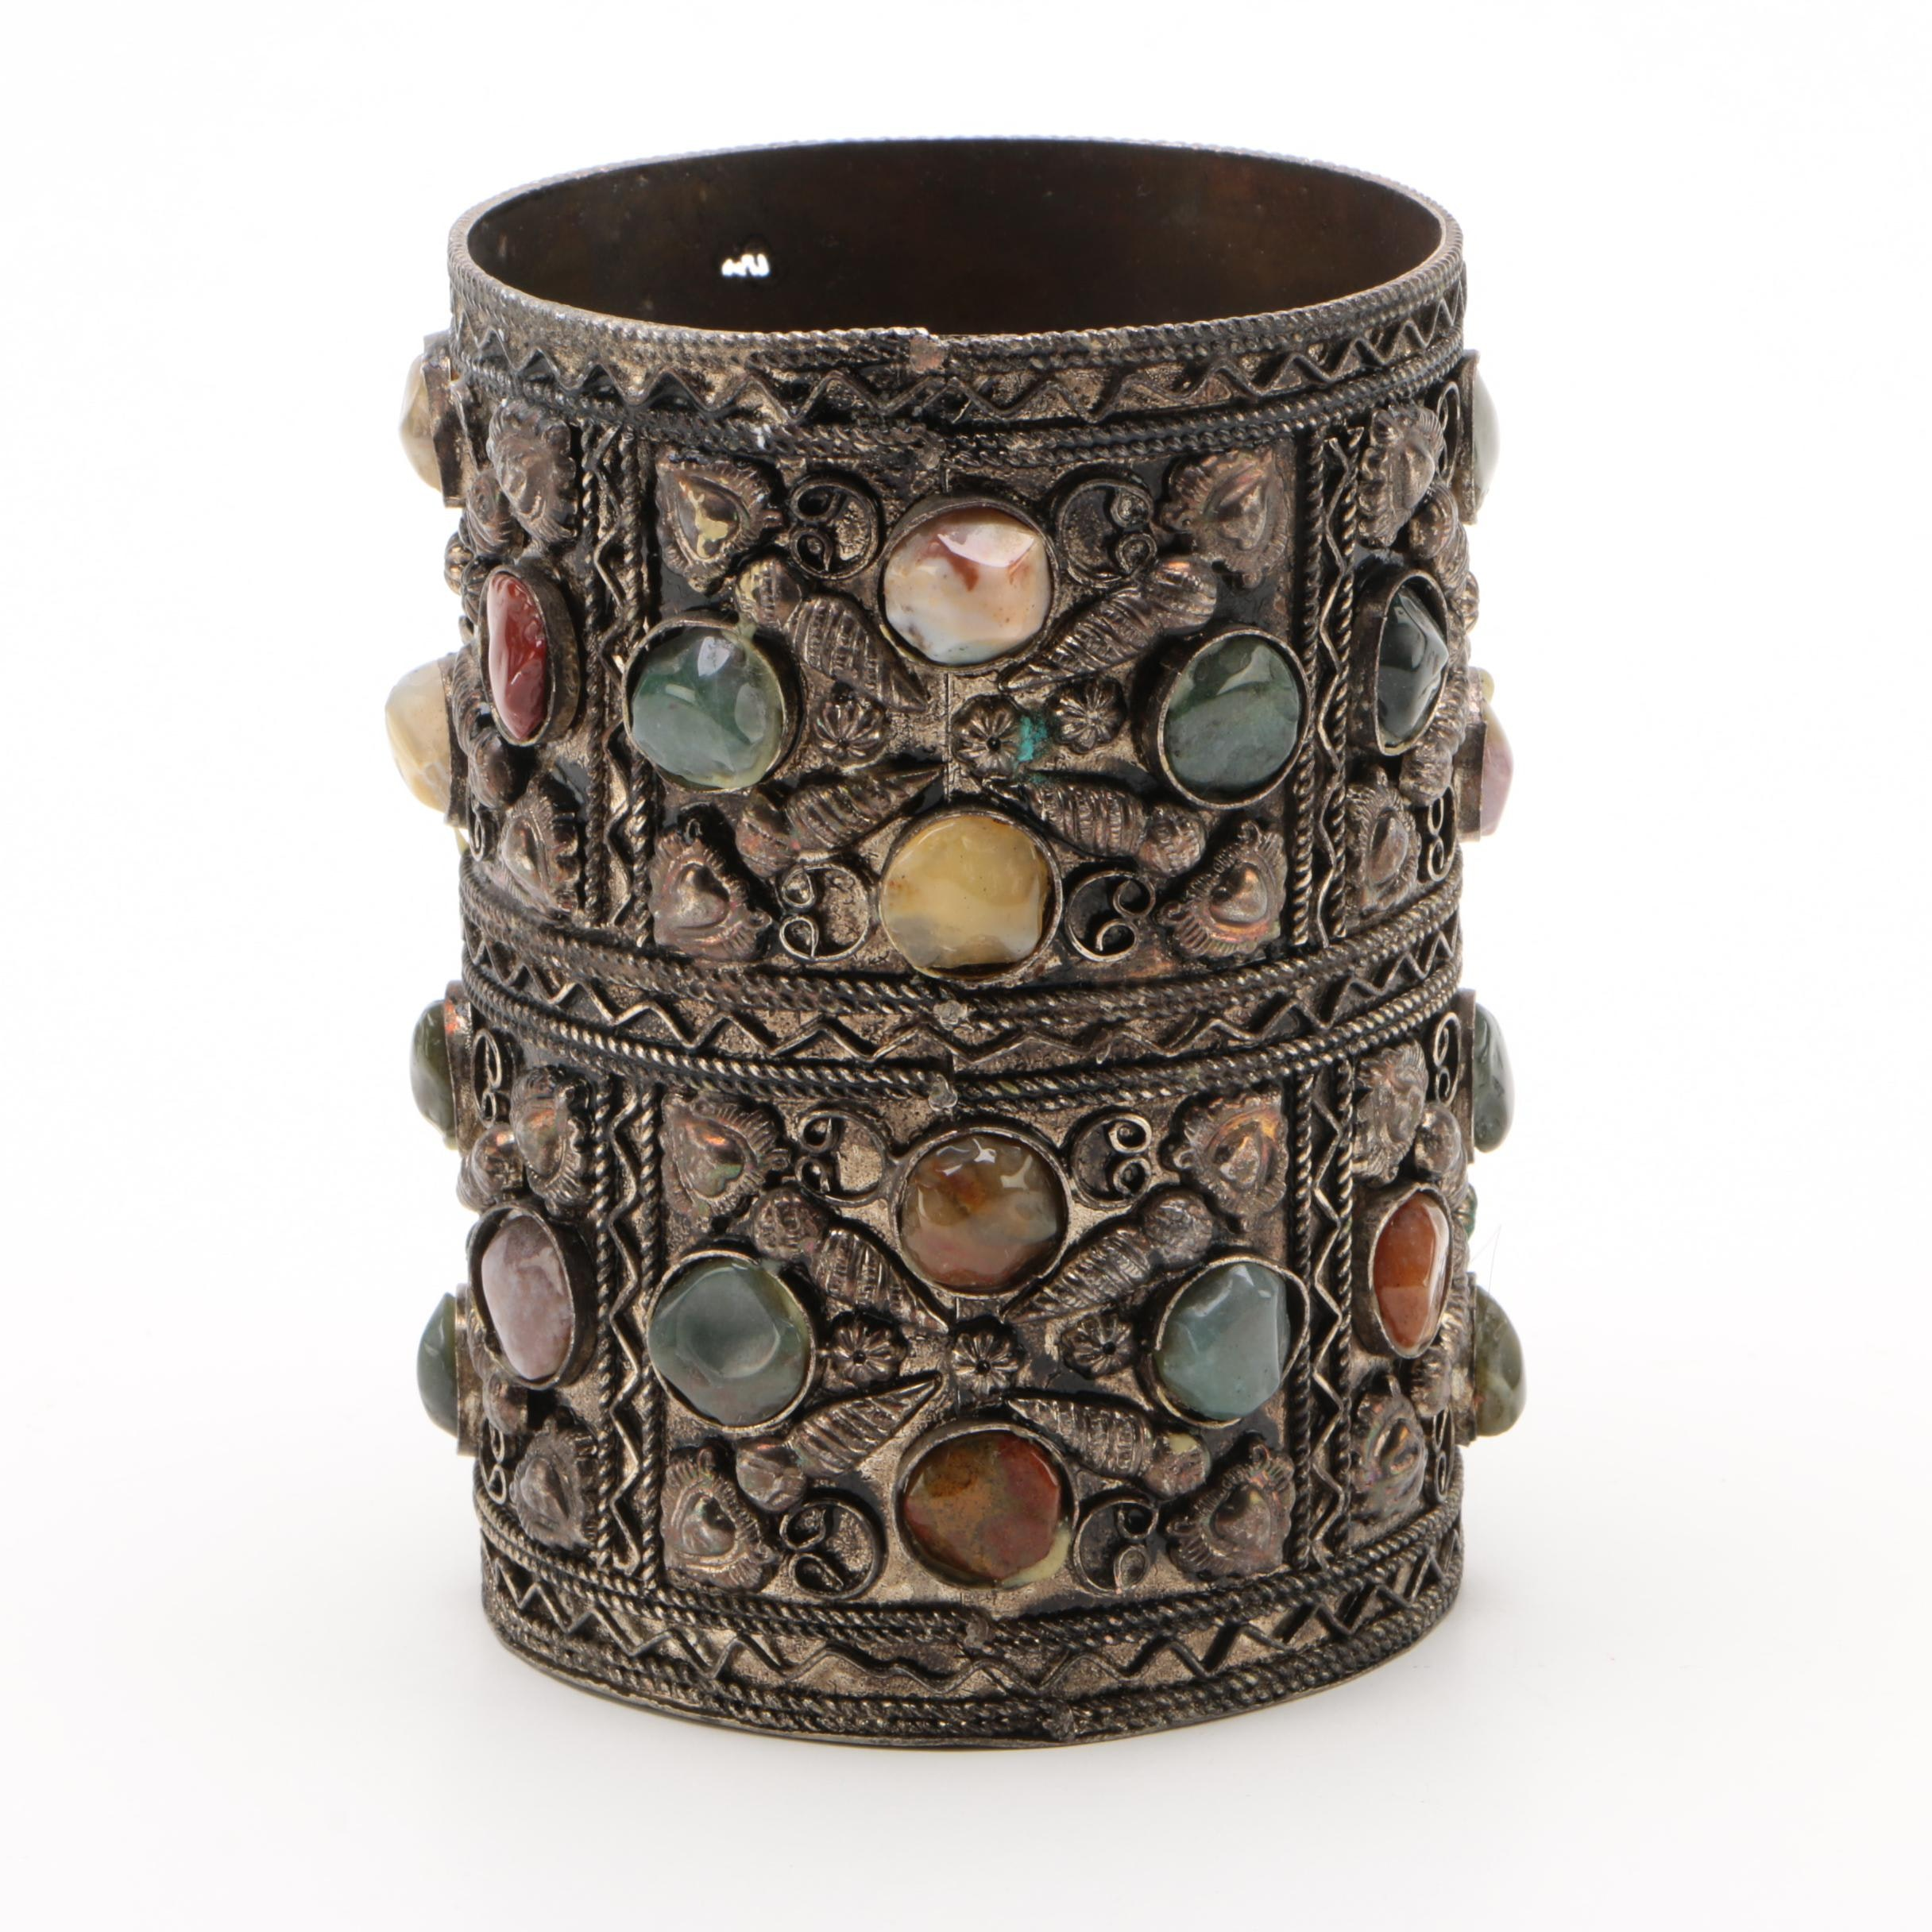 Indian Metal Pen Cup with Inset Agate Stones